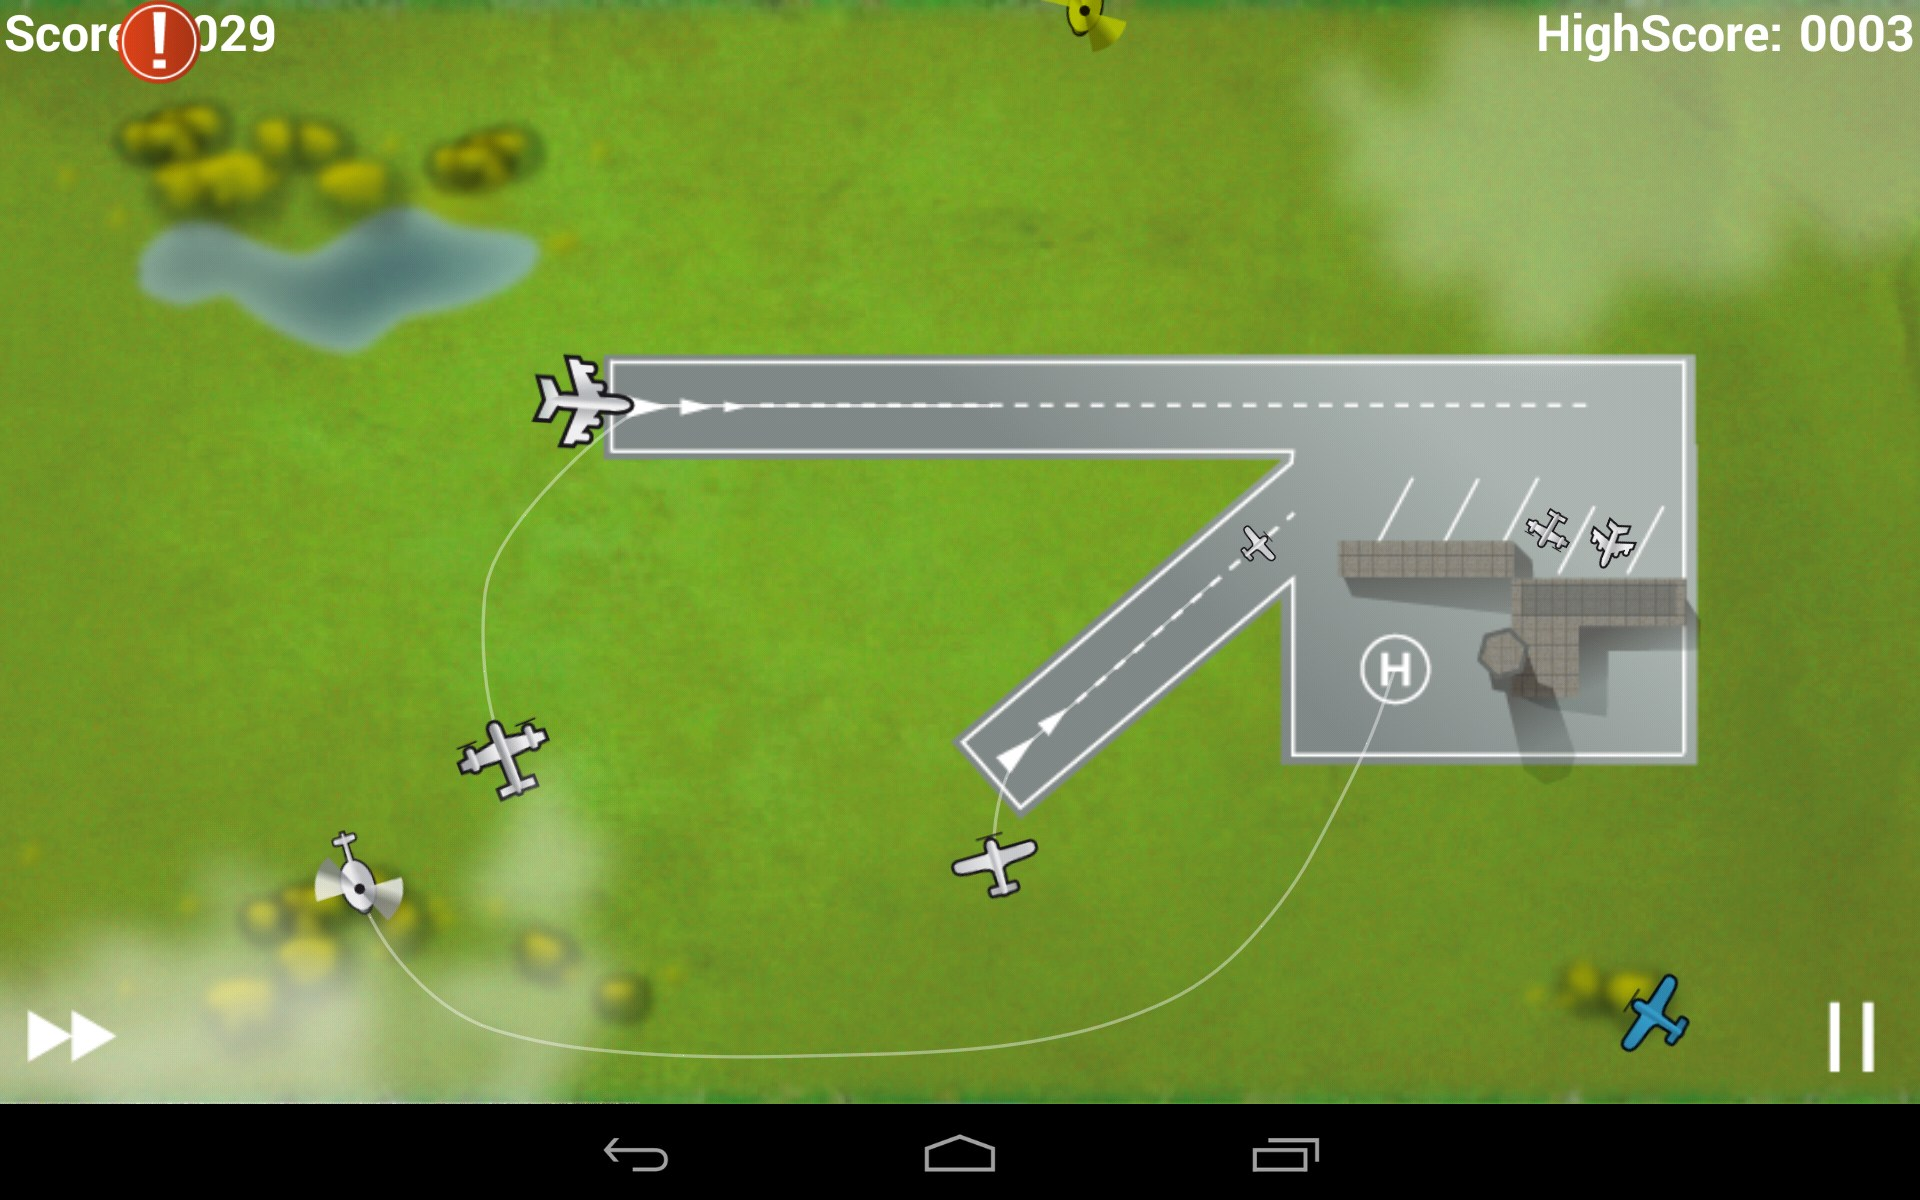 Air control apk cracked free download | cracked android apps.